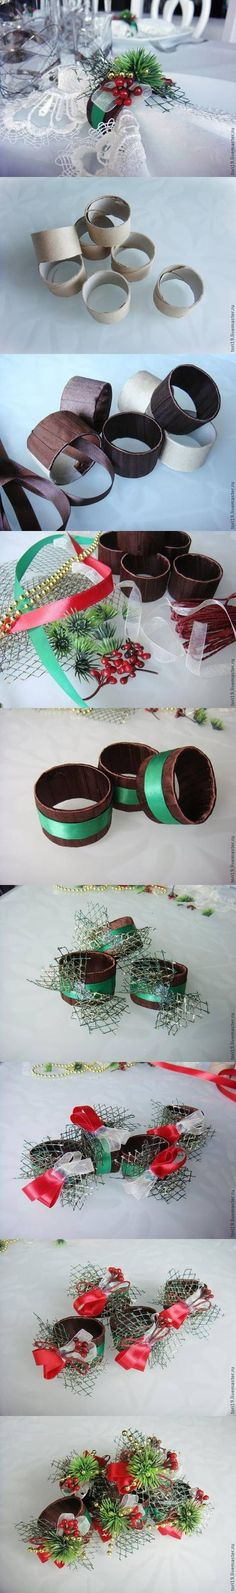 DIY Toilet Paper Roll Decorative Napkin Rings | iCreativeIdeas.com Like Us on…